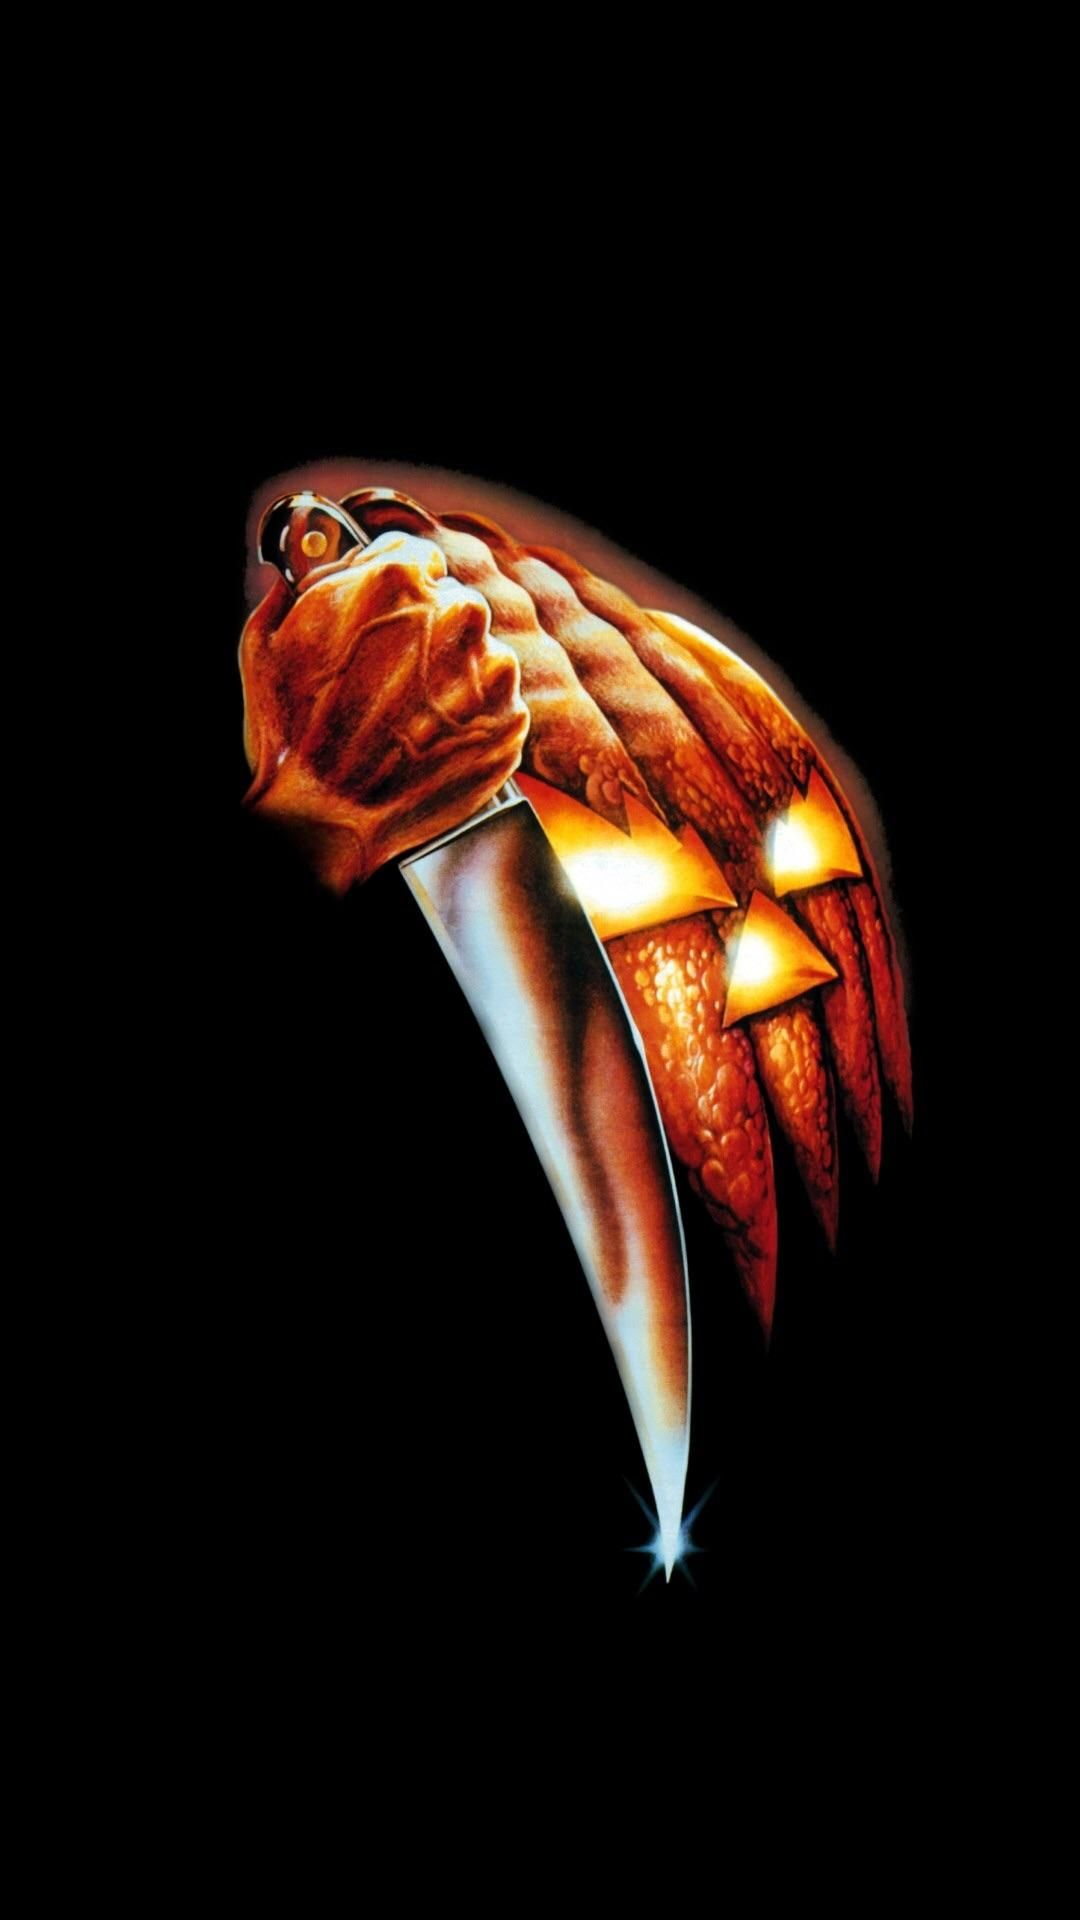 Heres A Halloween Wallpaper That Is Pretty Much Made For Any Iphone Looks Awesome On The Oled Pa Scary Wallpaper Halloween Wallpaper Halloween Wallpaper Iphone